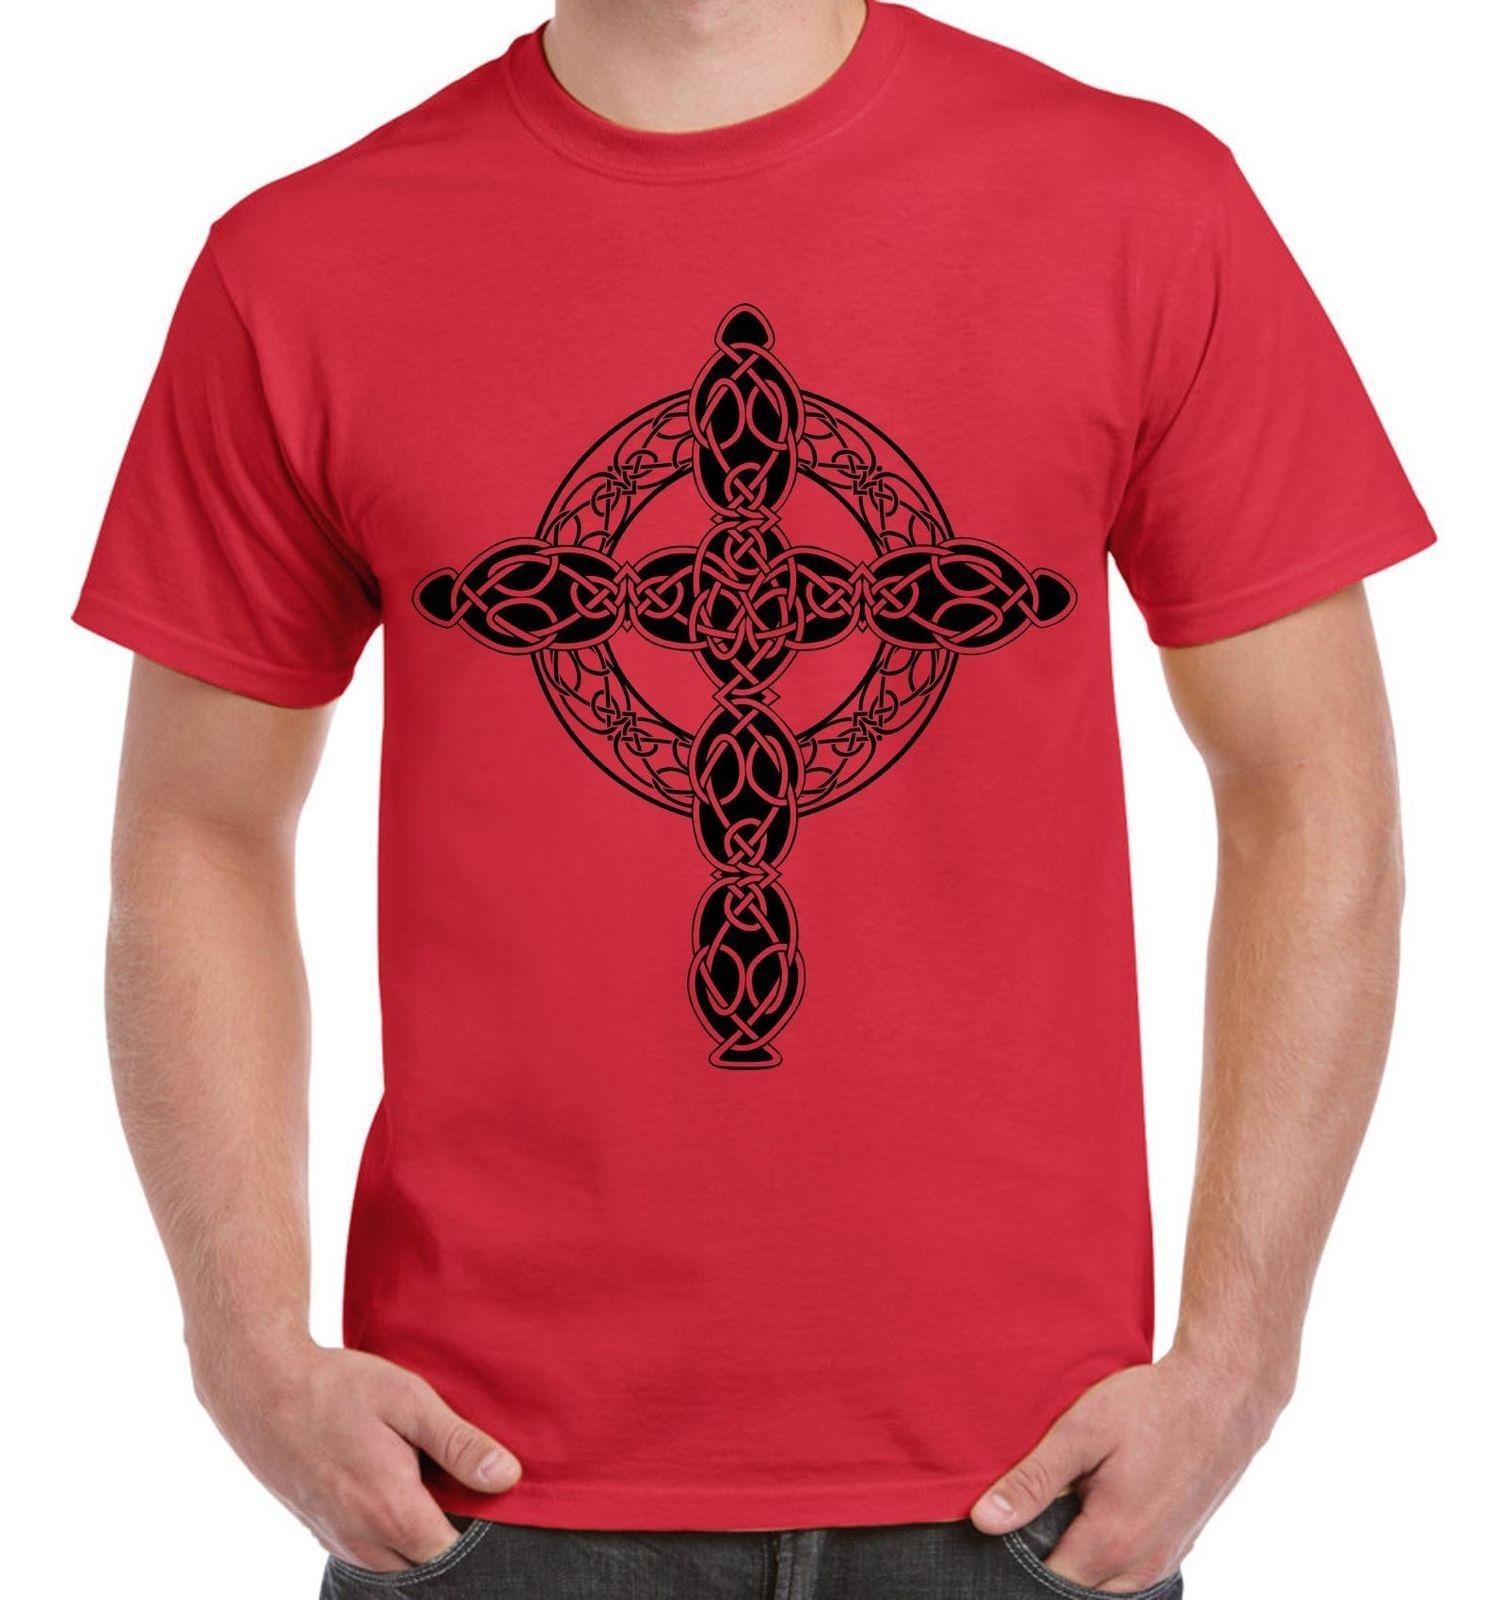 Celtic Cross Tattoo Style Hipster Large T-Shirt white black grey red trousers tshirt suit hat pink t-shirt RETRO VINTAGE Classic t-shirt